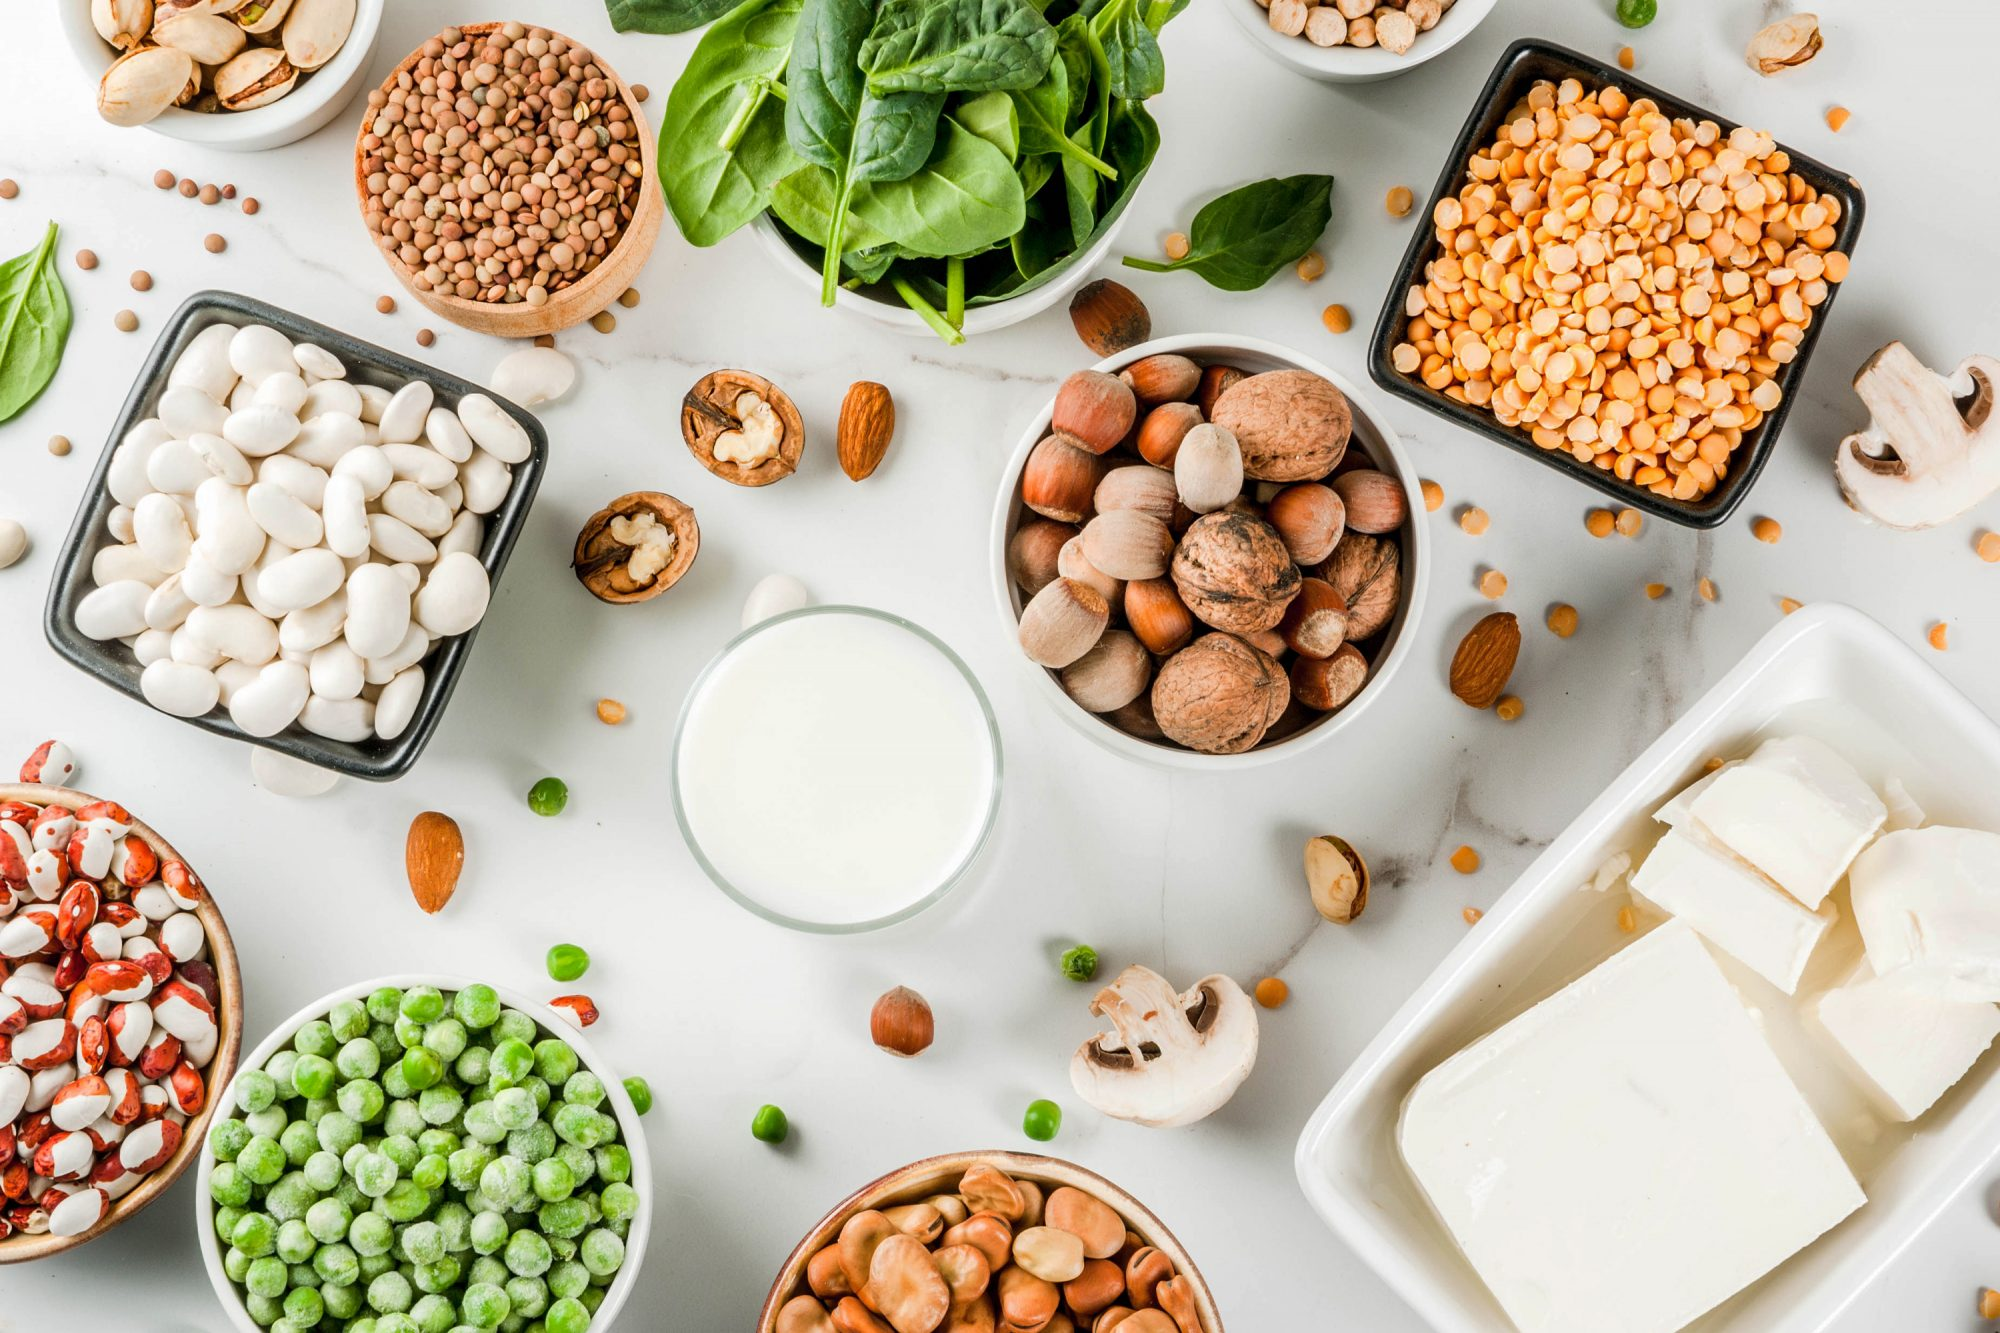 What Foods Are High in Protein? High-protein foods: nuts and legumes